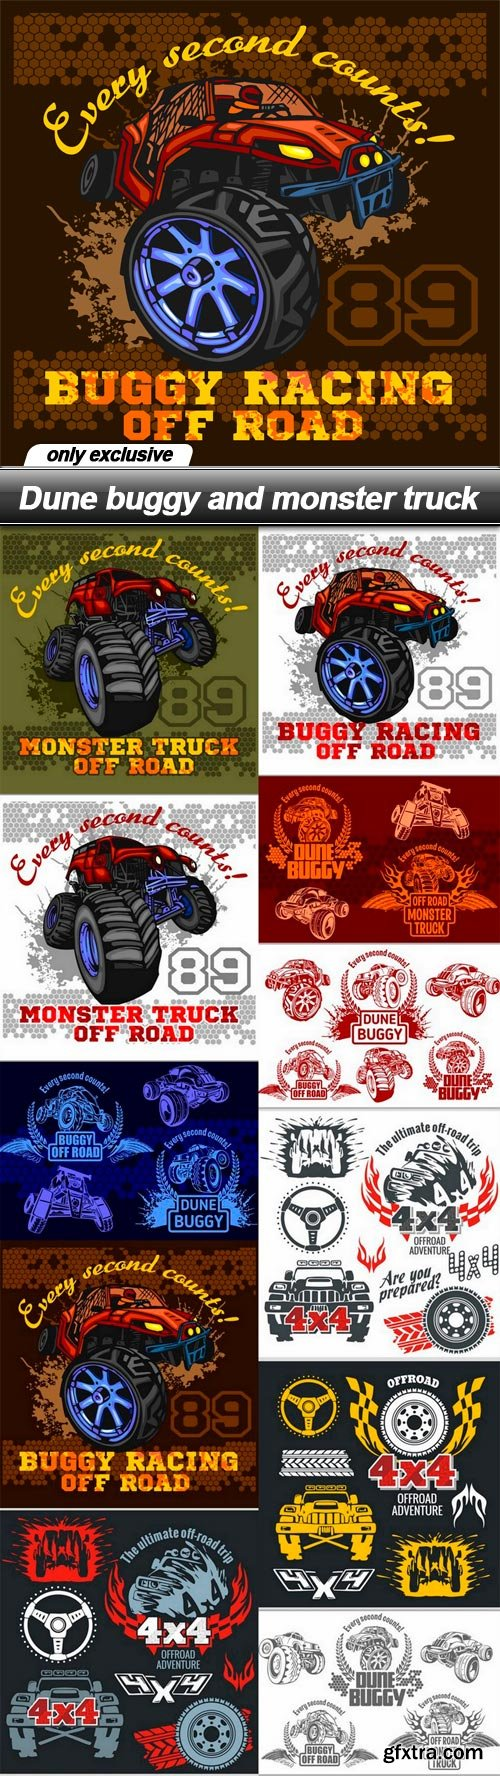 Dune buggy and monster truck - 11 EPS